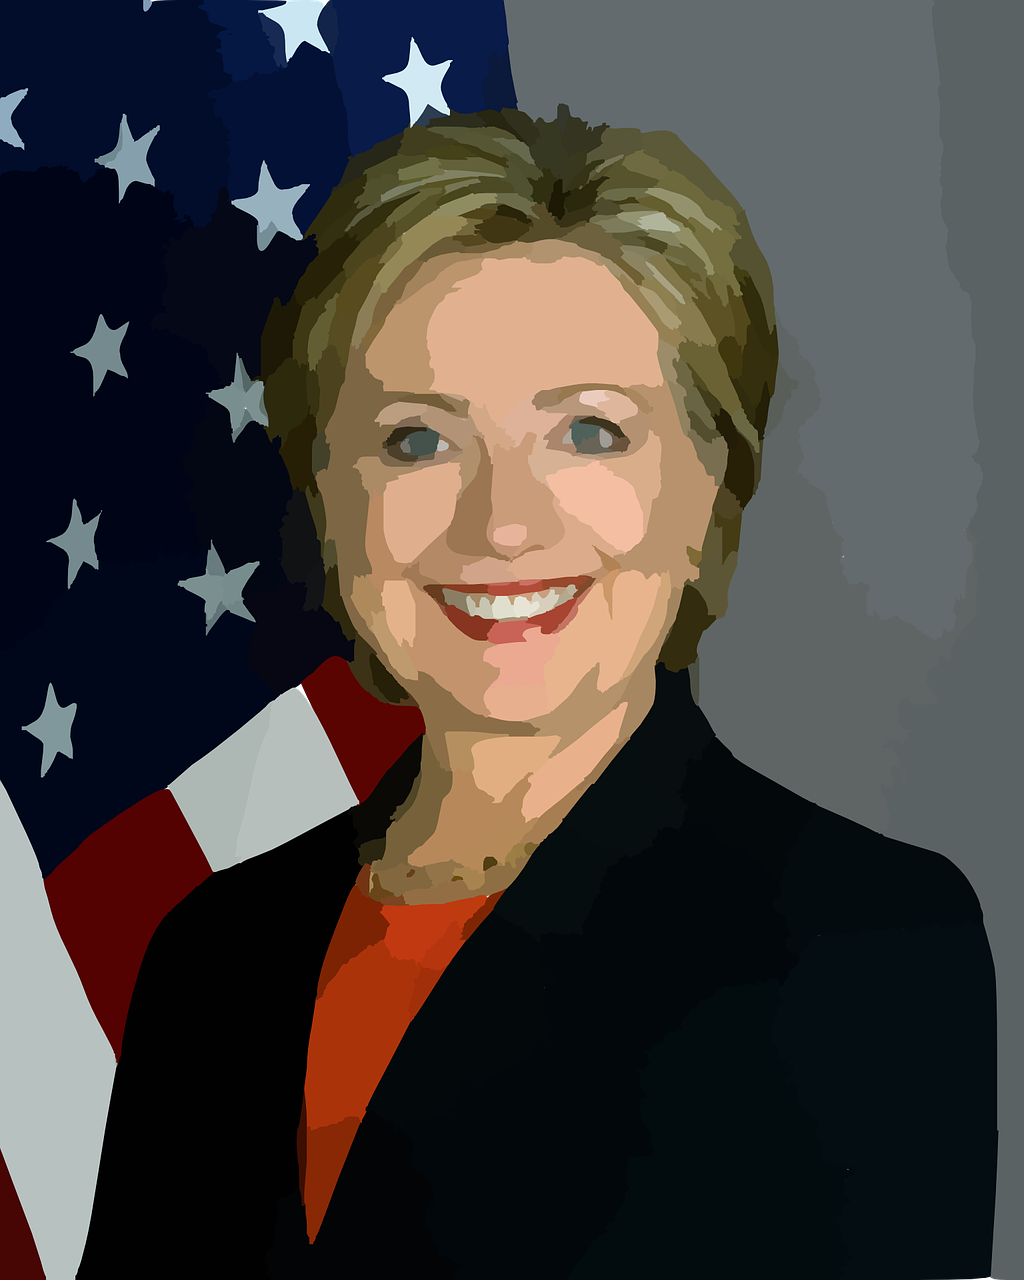 Hillary Clinton Democrat candidate for US president